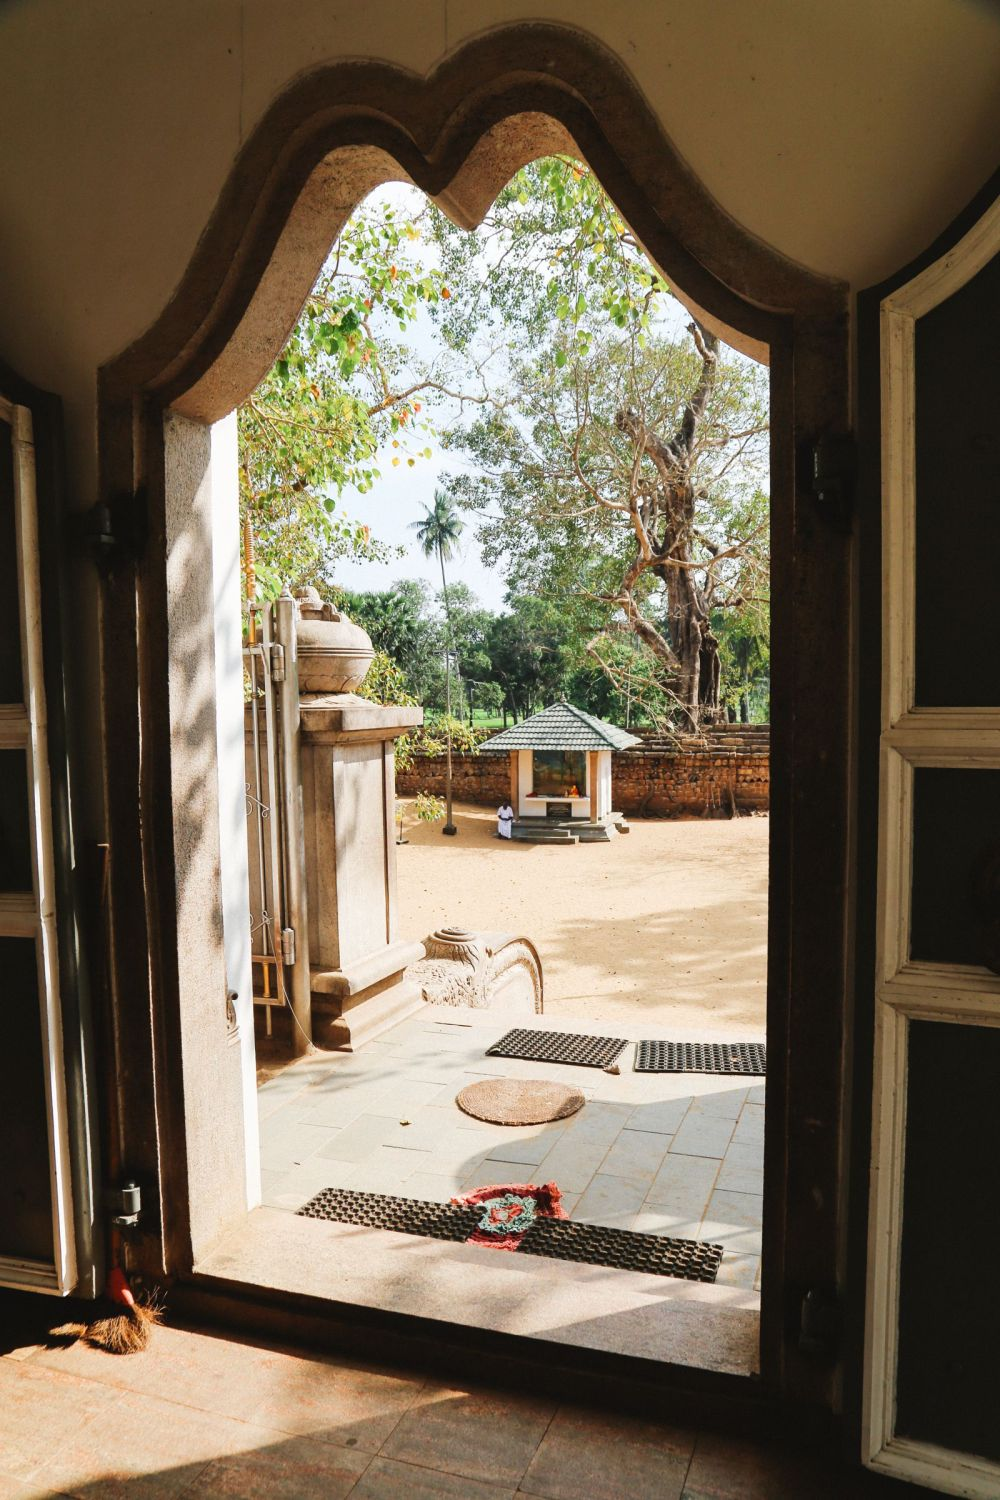 The First 24 Hours In Sri Lanka (52)